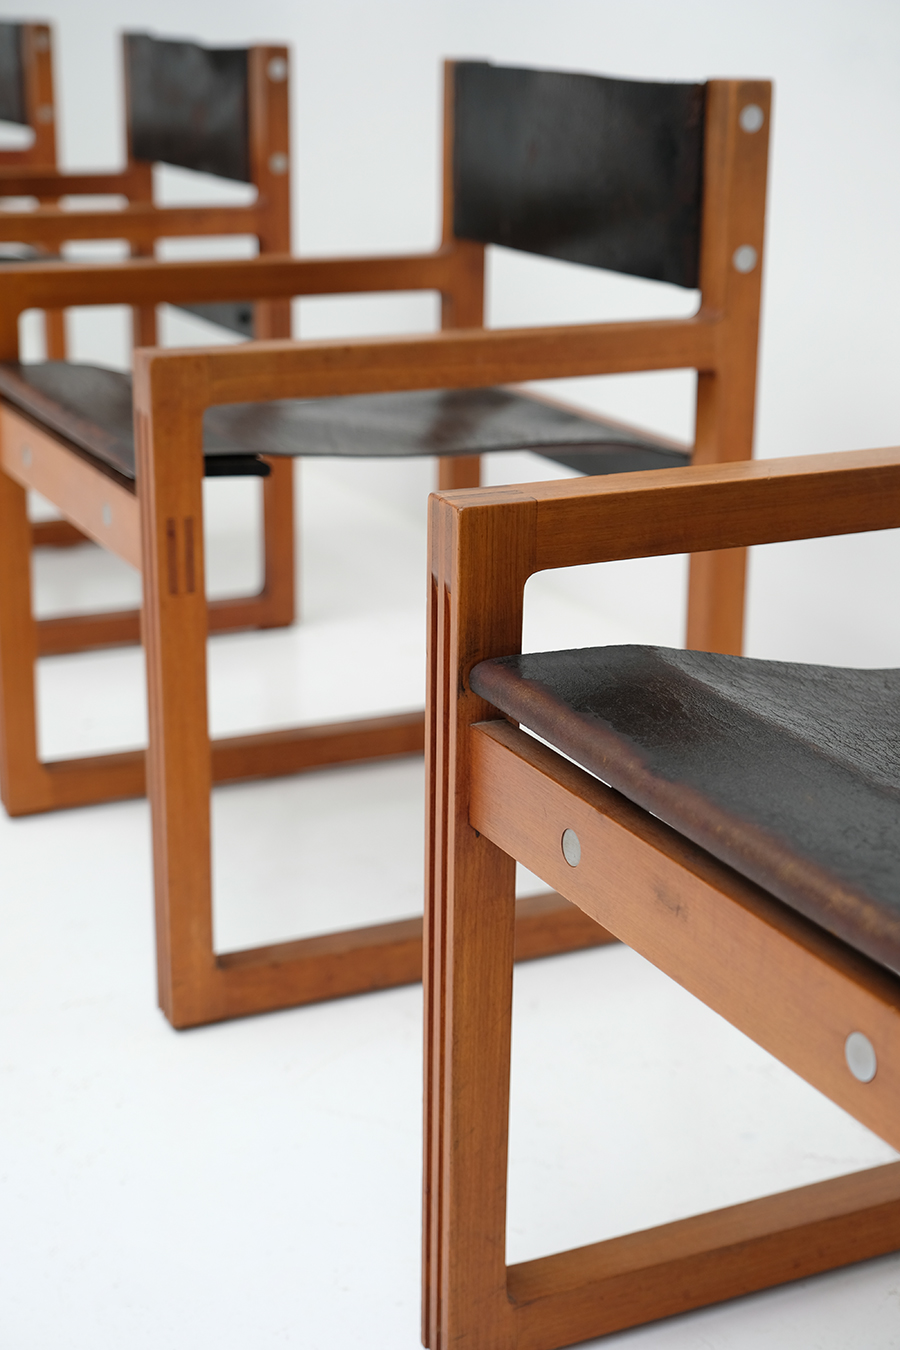 Christophe Gevers Chairs for De Coeneimage 6